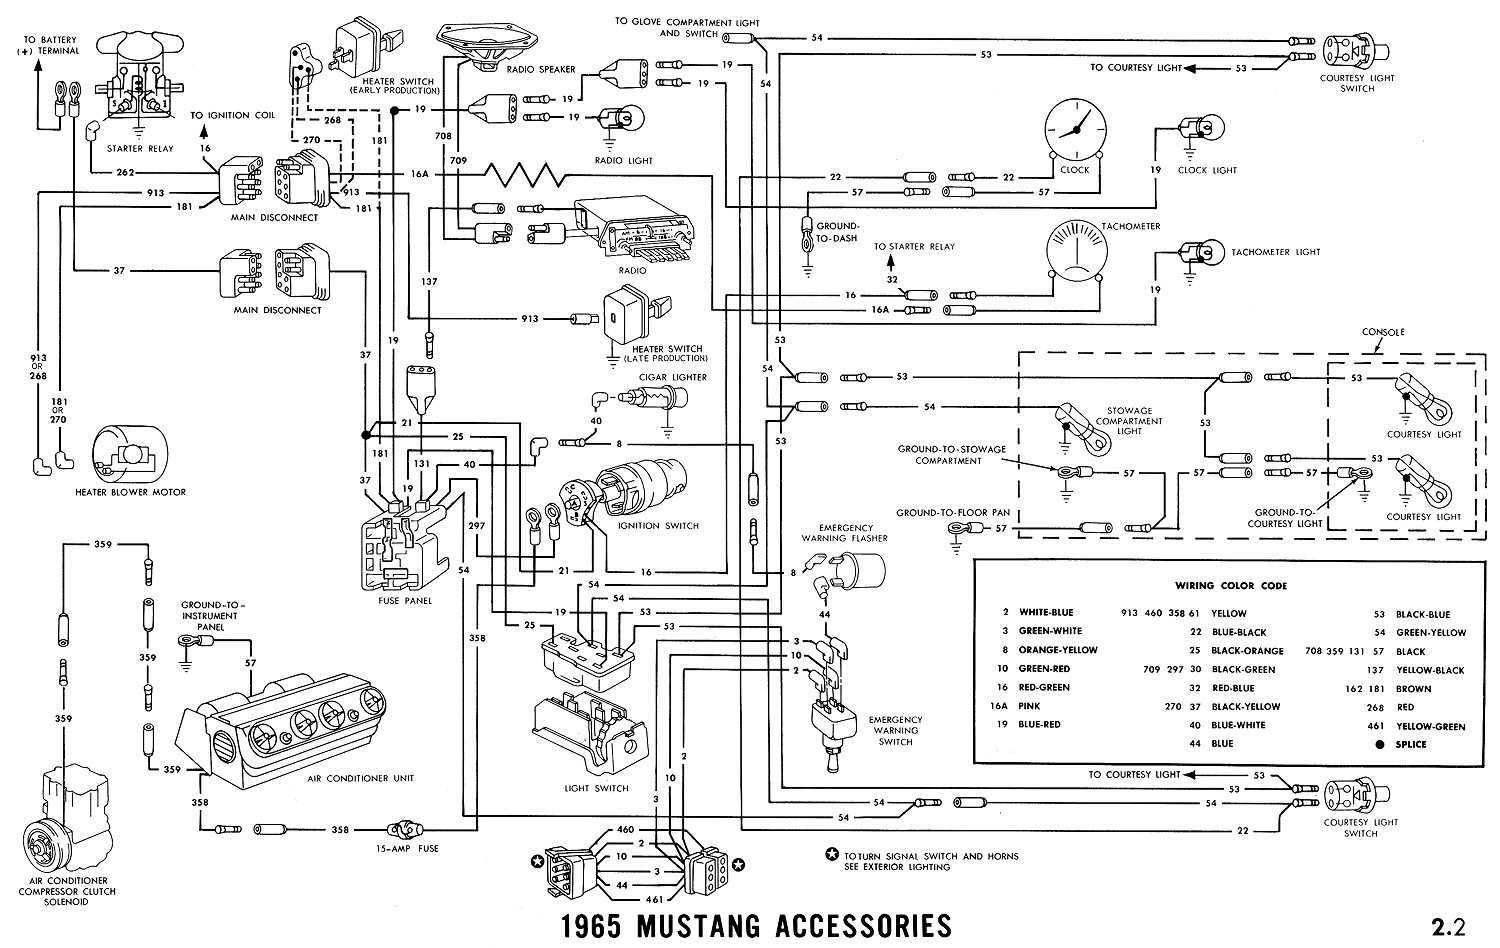 1965i diagrams 1266868 ford transit radio wiring diagram wiring 98 mustang gt stereo wiring harness at alyssarenee.co